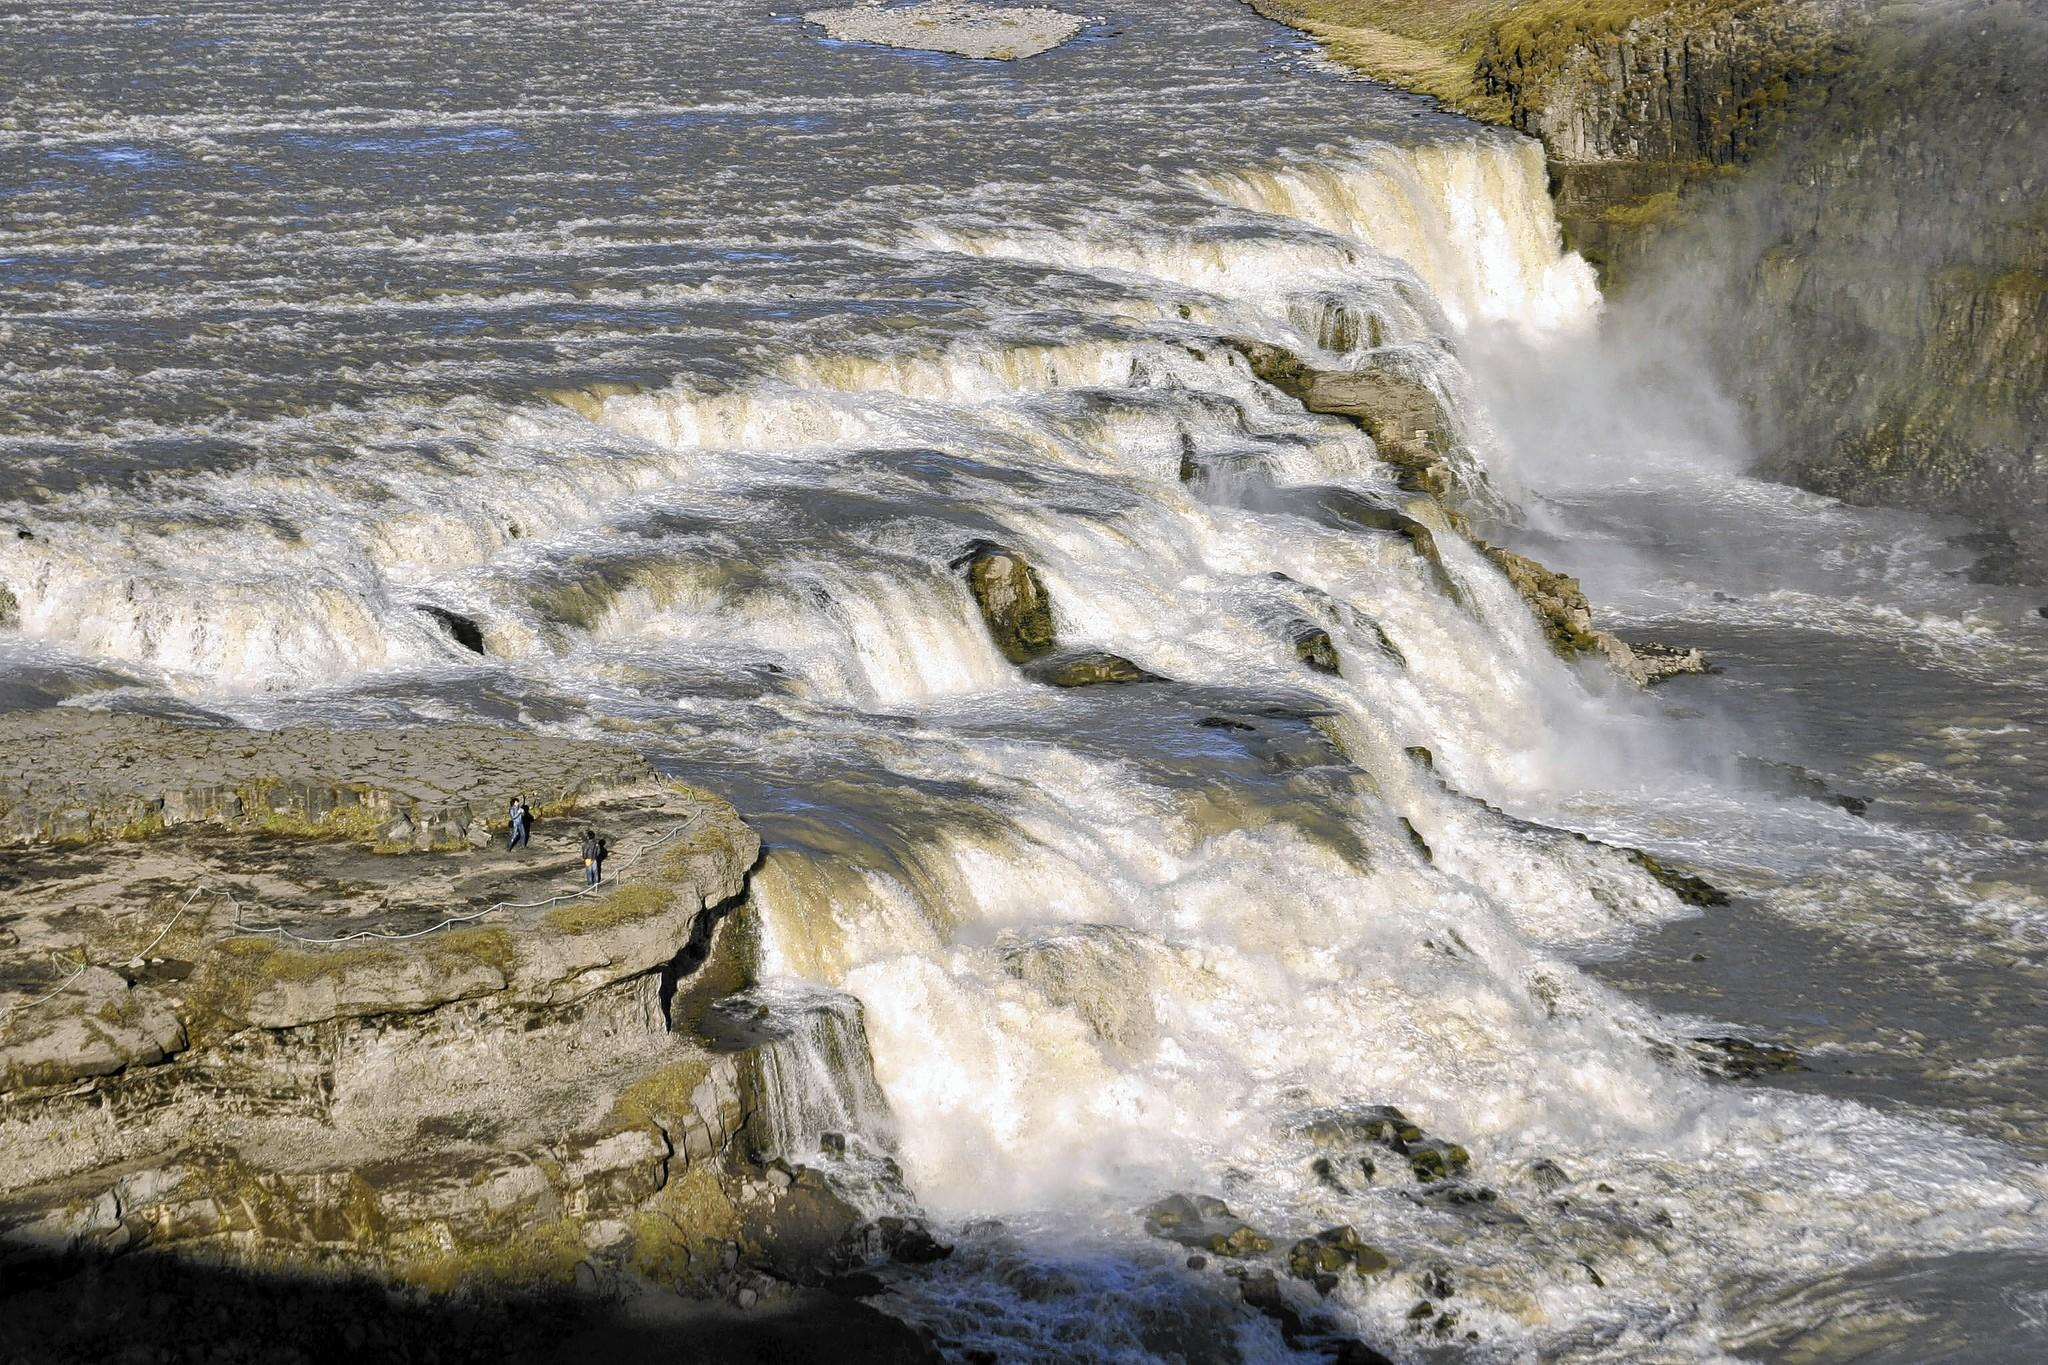 Gullfoss, one of Iceland's most impressive waterfalls, can be seen during a day trip from Reykjavik.